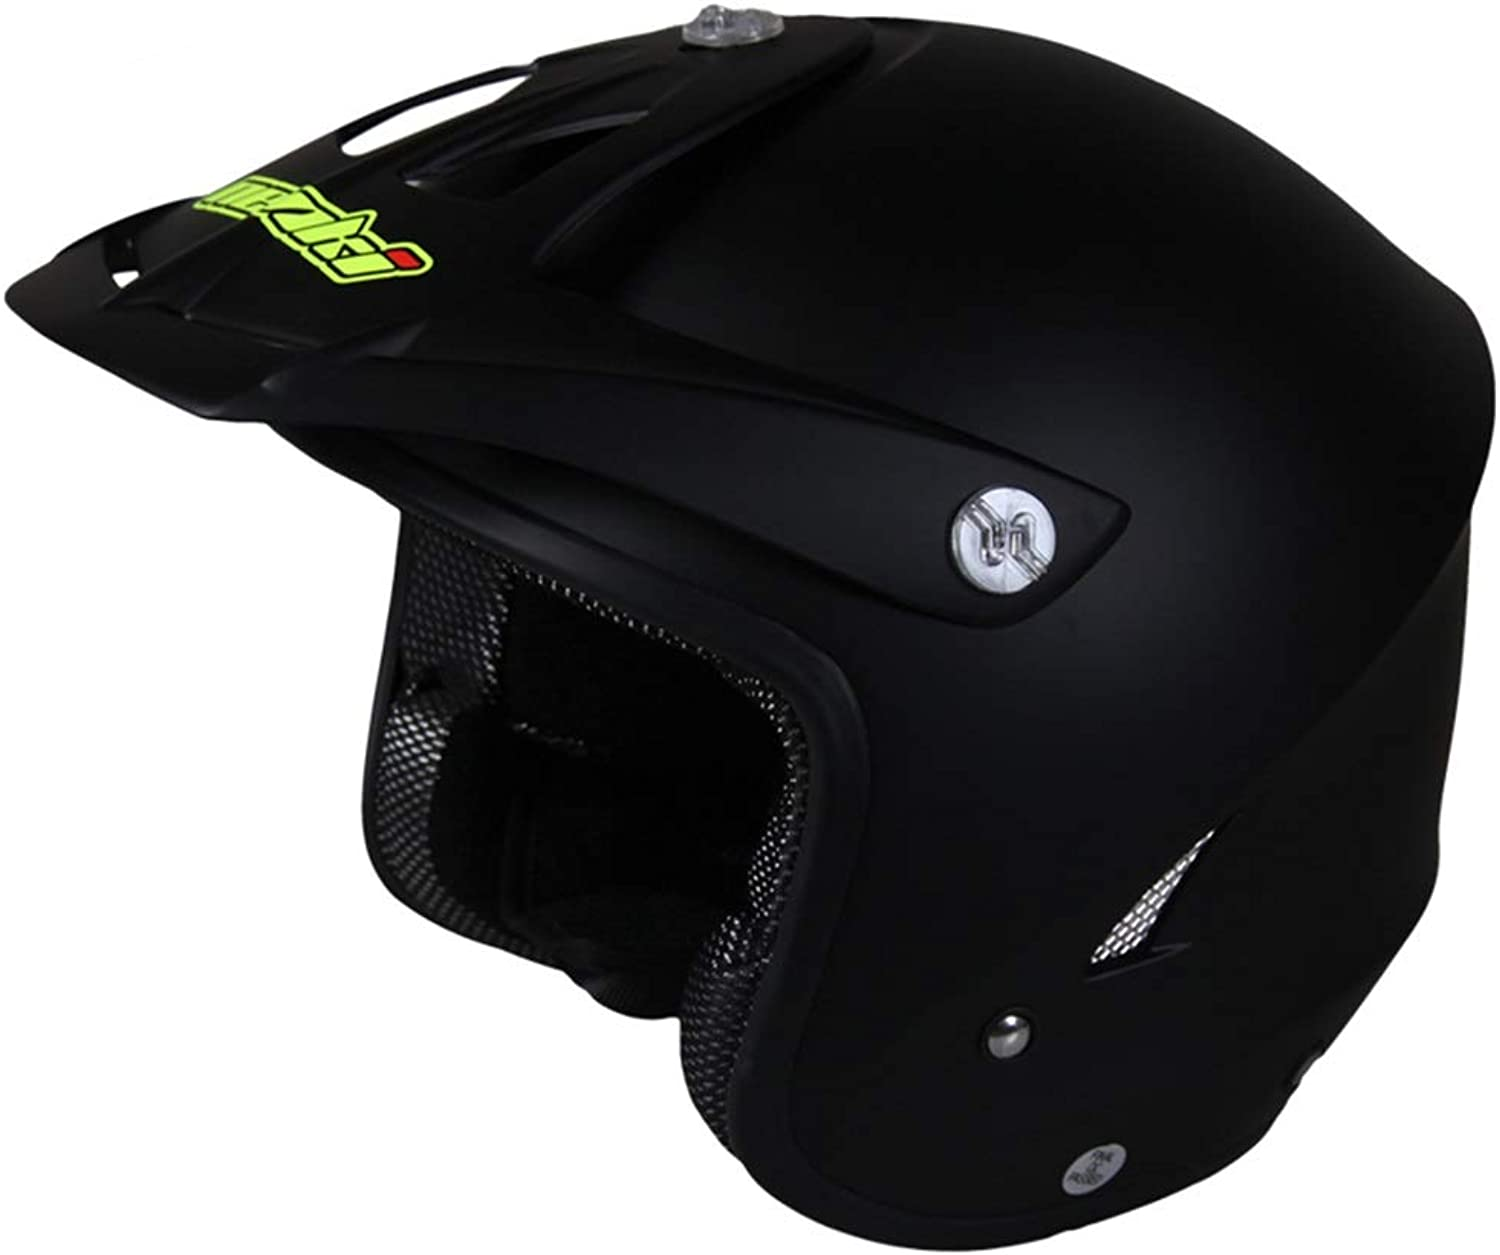 Lanbinxiang@ ABS Material Motorcycle Simple Helmet Climbing OffRoad Summer Helmet Outdoor Riding Sports Personality Men and Women Harley Half Helmet Four Seasons Predection